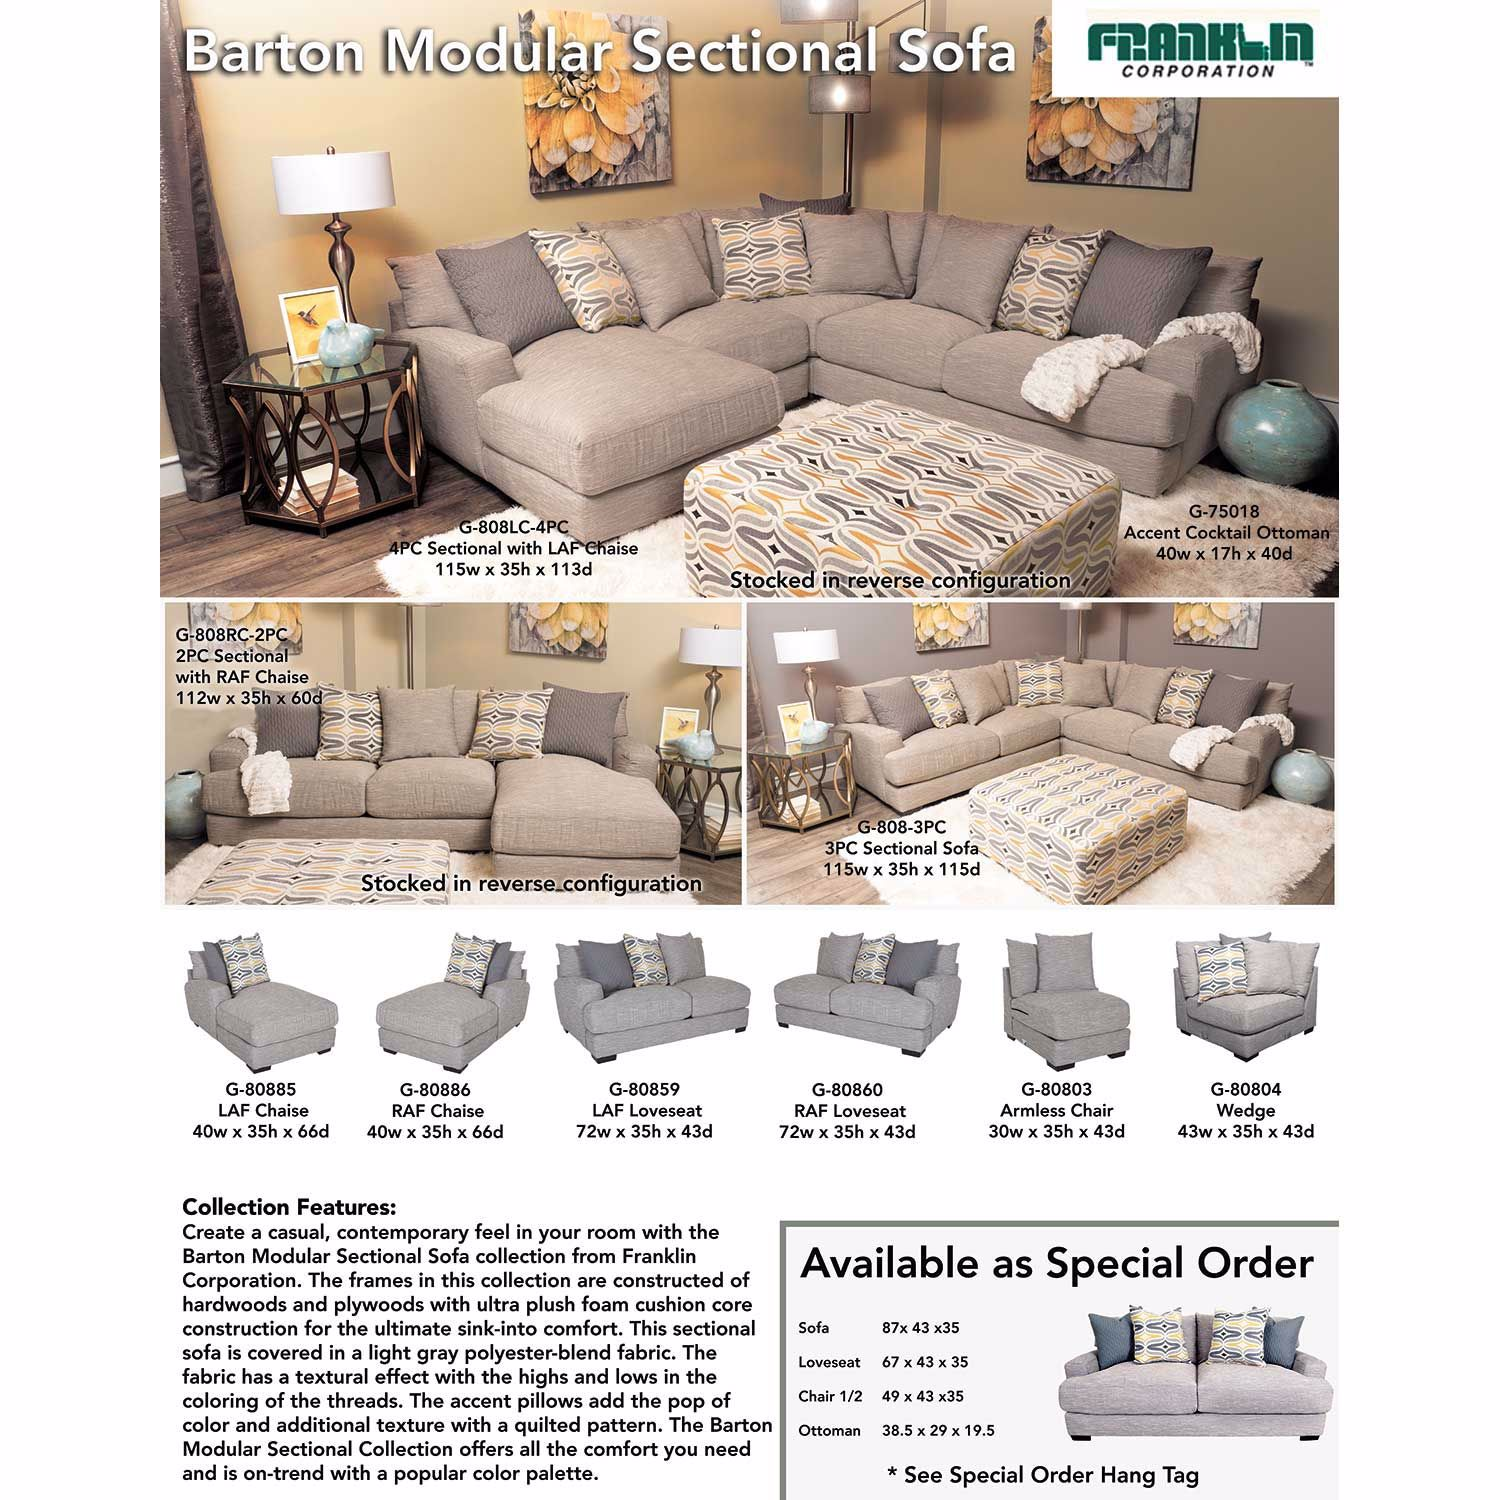 Picture of Barton 2PC Sectional with RAF Chaise